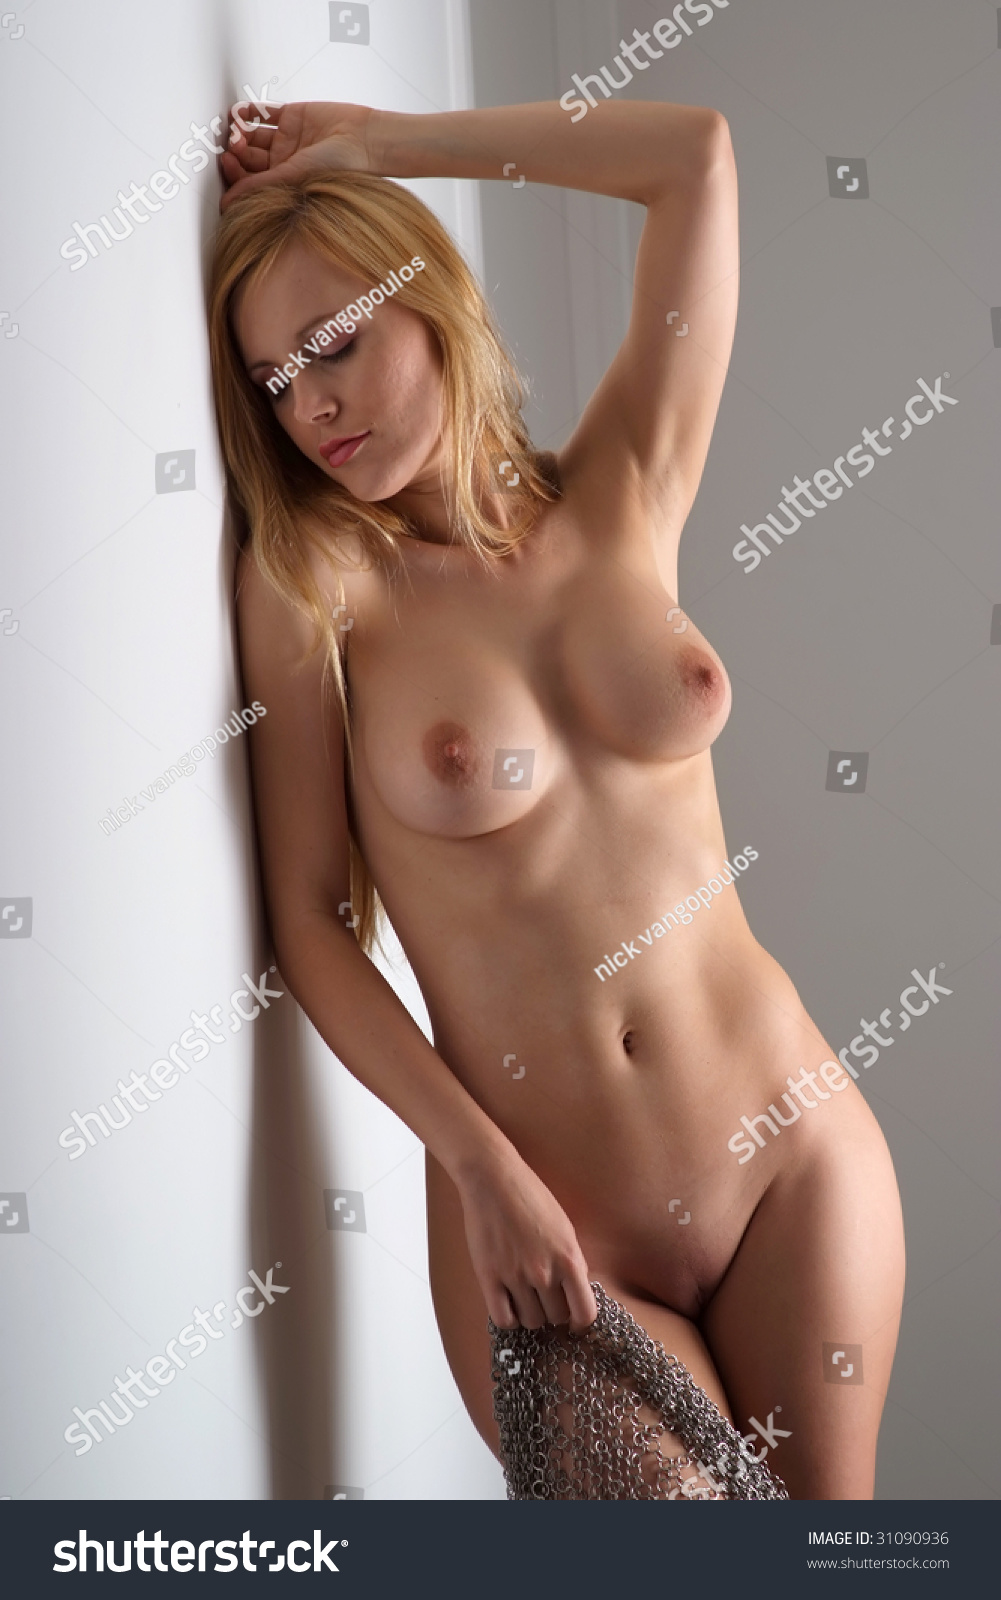 Nude Women Stripping Nude 9